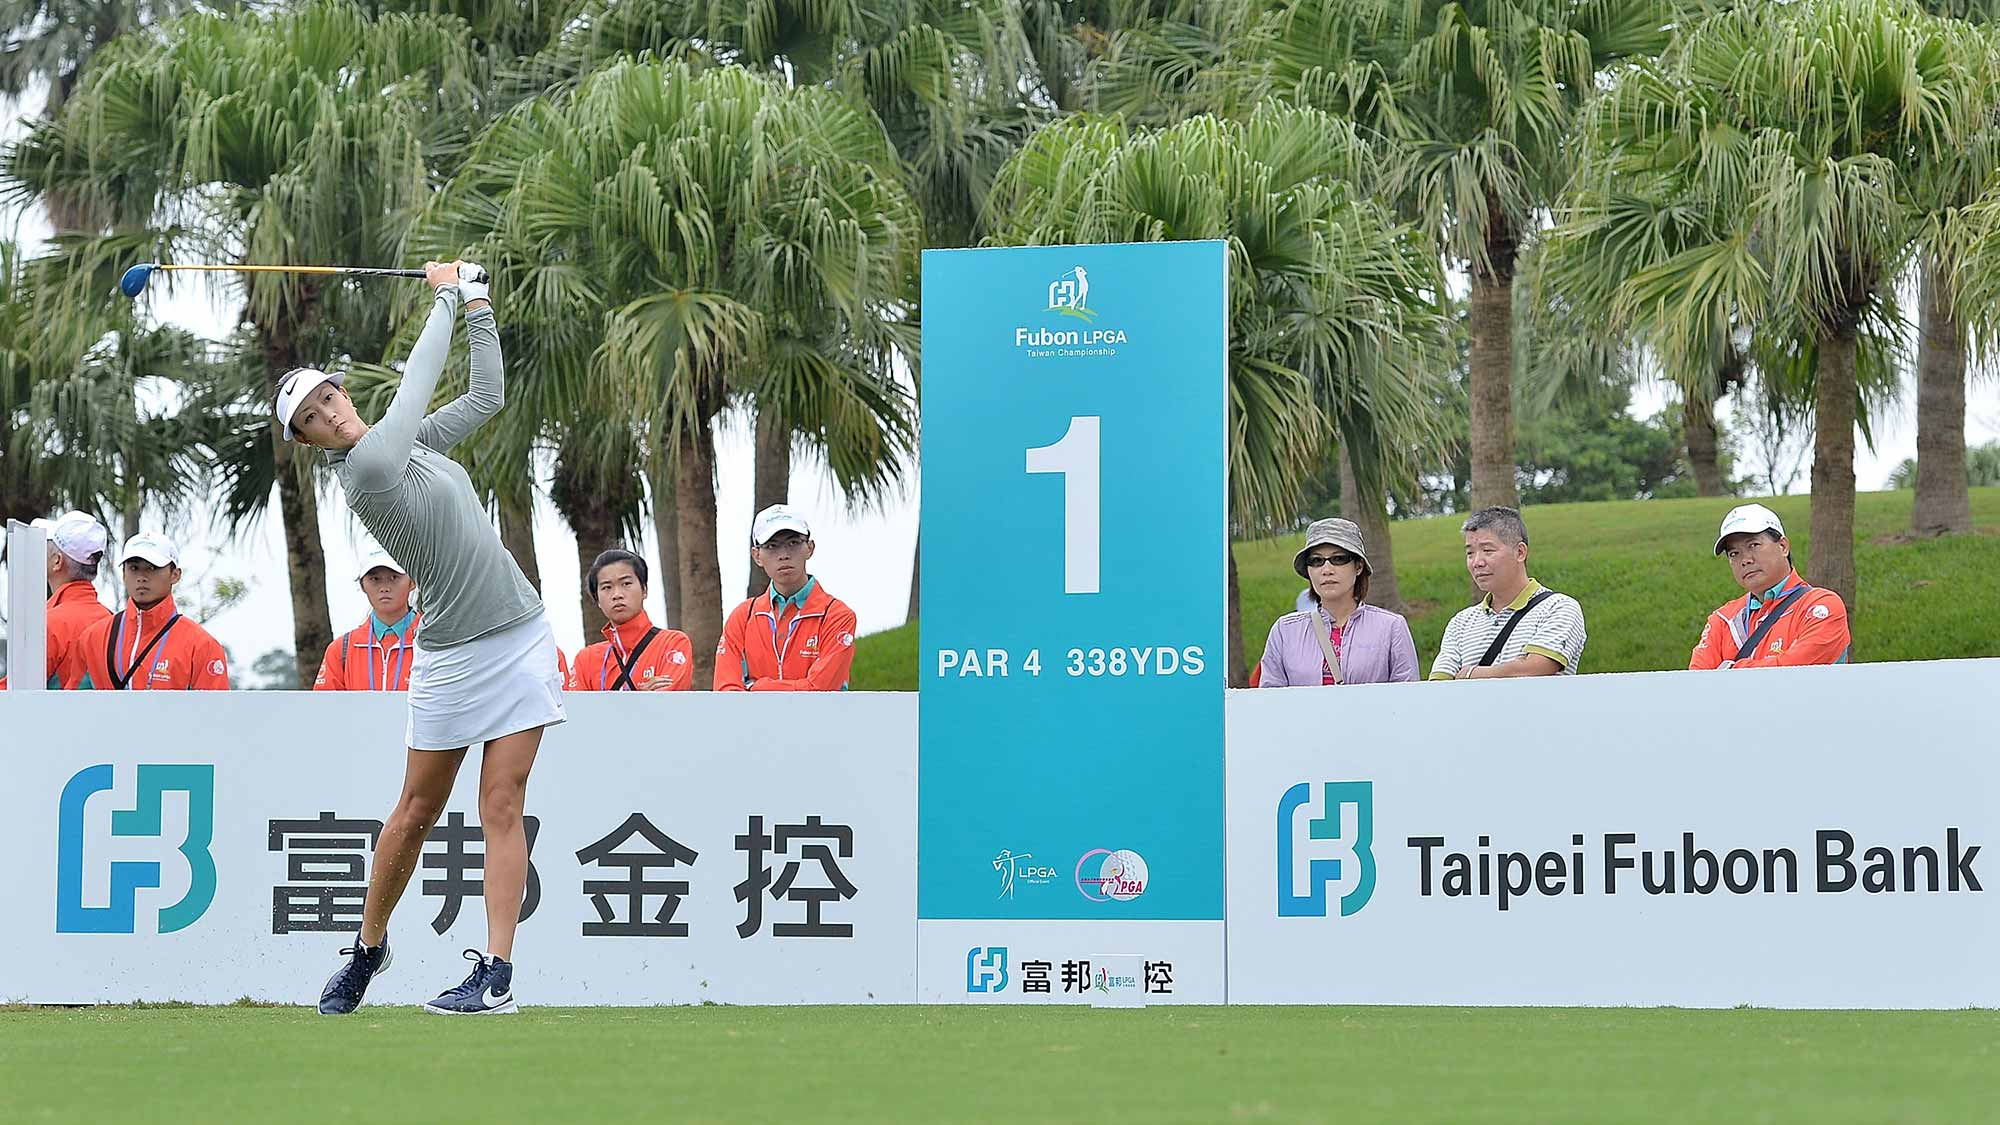 Michelle Wie of the United States plays the shot during the round one of 2015 Fubon LPGA Taiwan Championship at Miramar Golf & Country Club